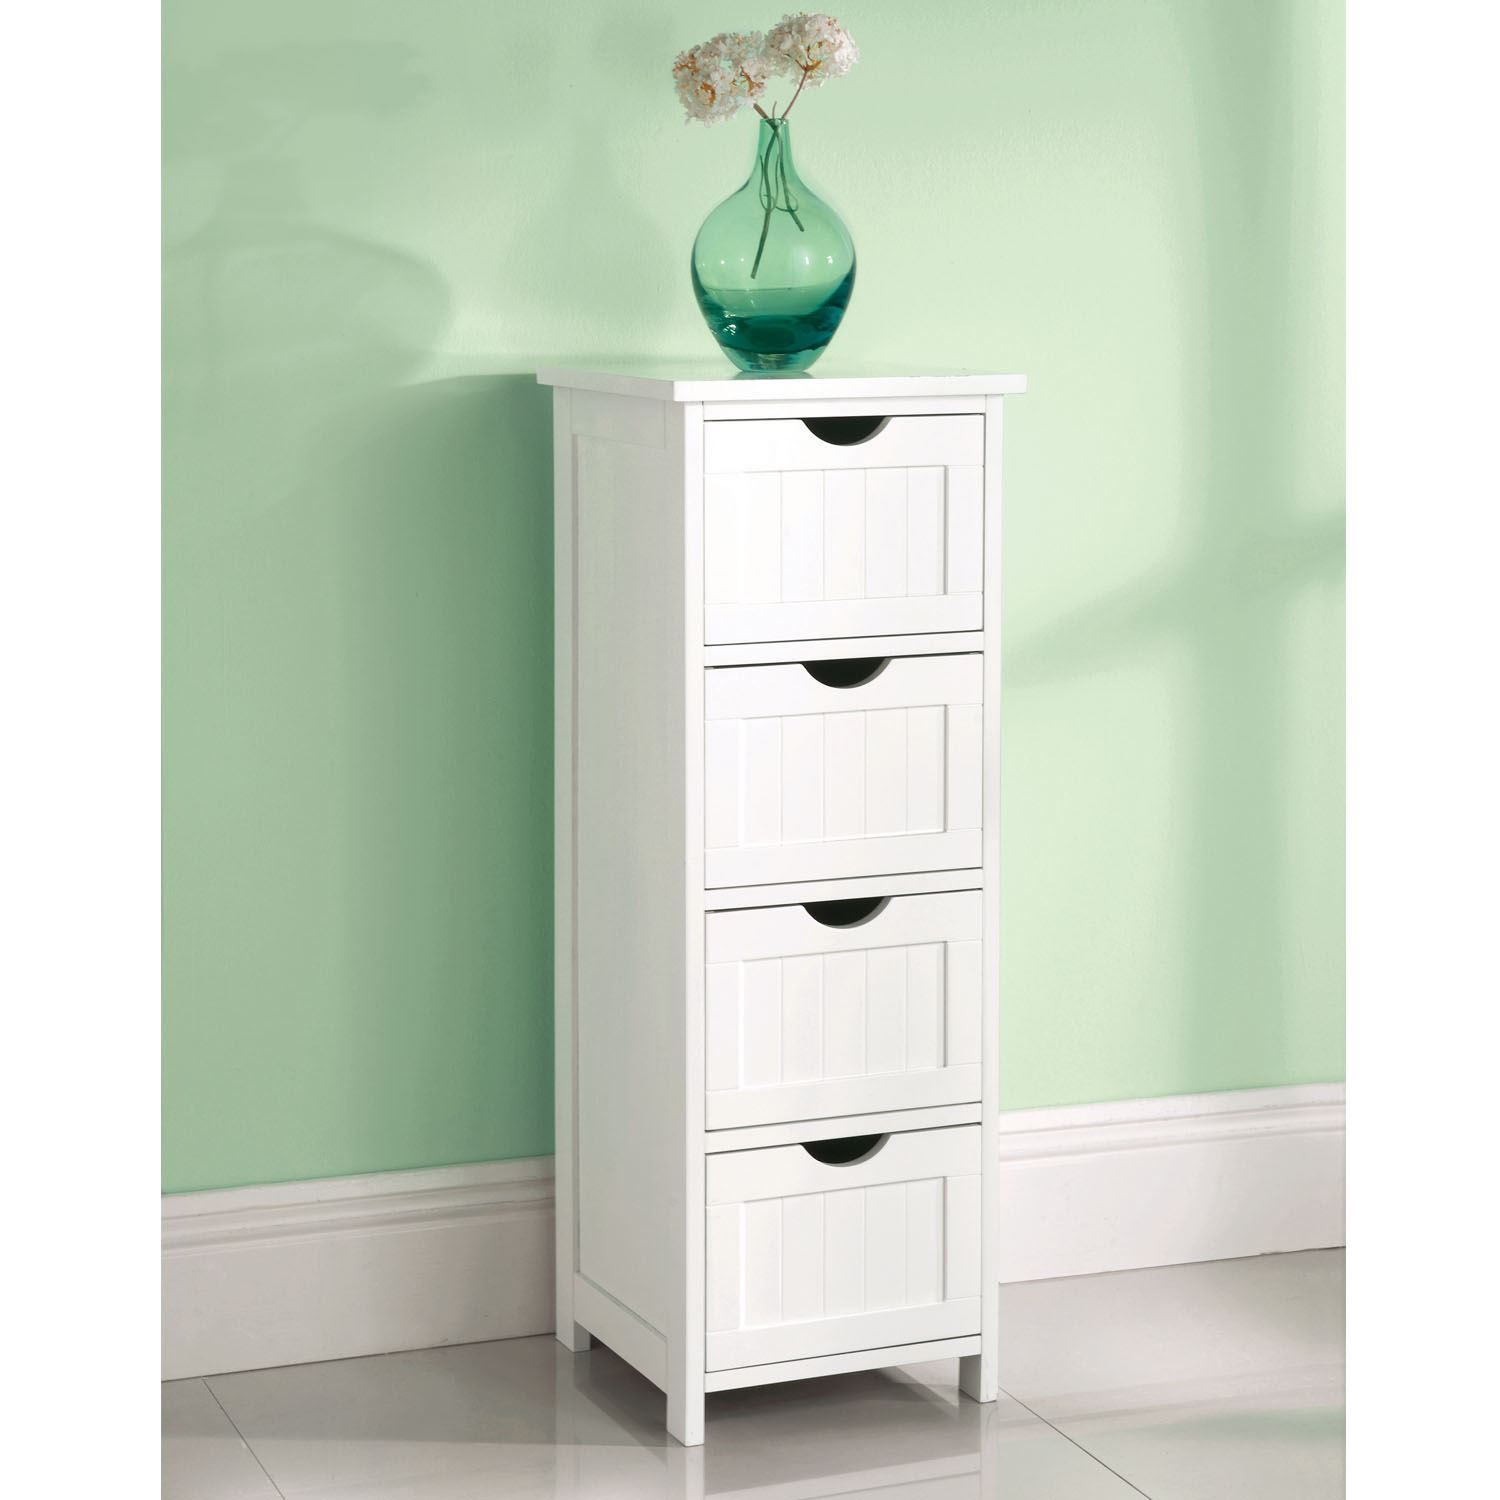 WHITE WOODEN 4 DRAWER FREE STANDING BATHROOM CABINET SHELF